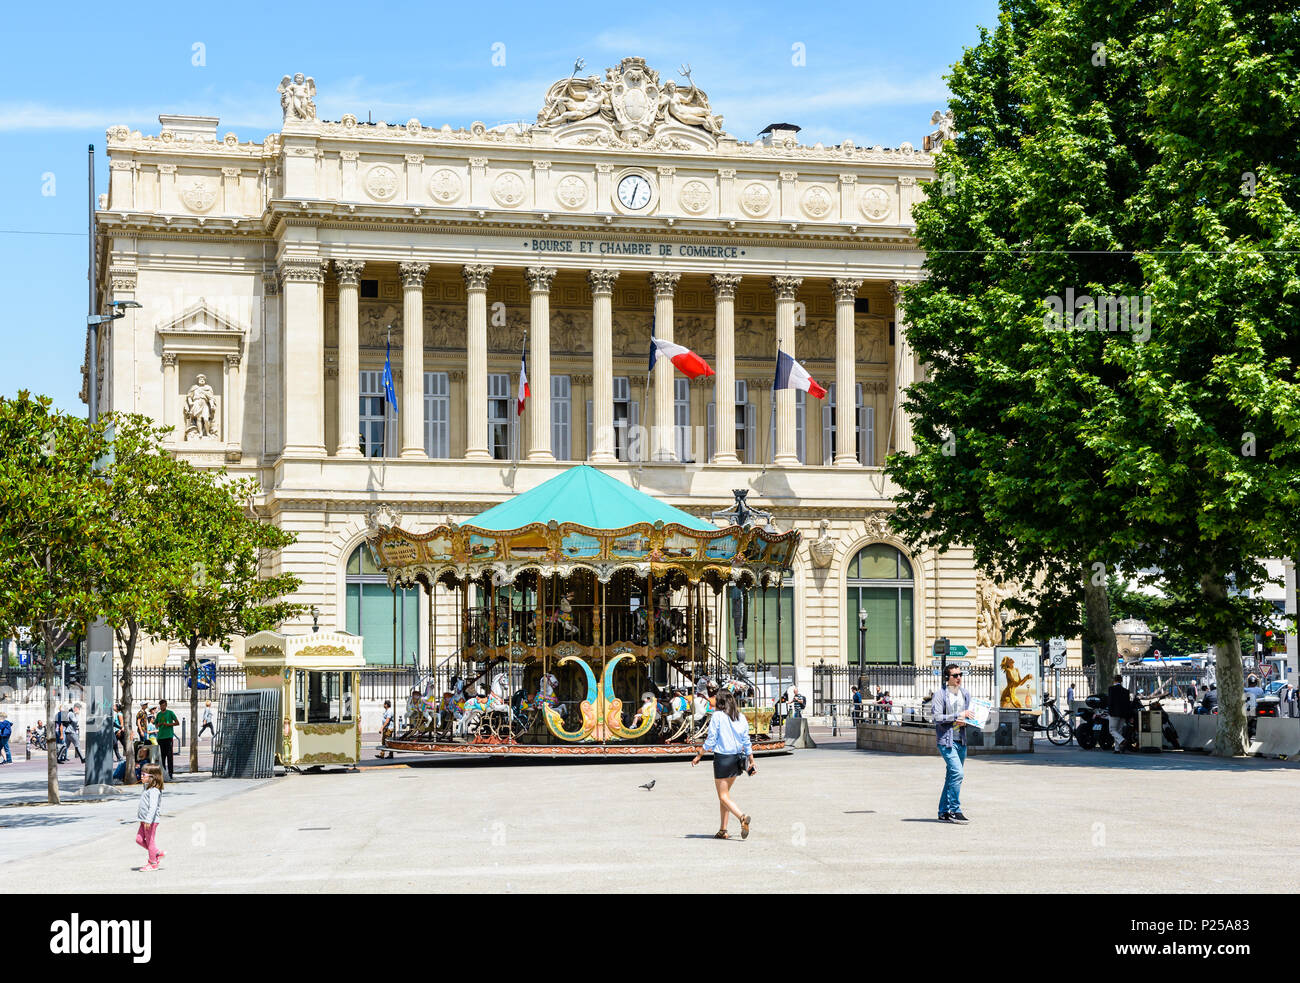 The Palais de la Bourse, located on the Canebiere in Belsunce district, is the headquarters of the Chamber of Commerce and Industry and houses the Mar - Stock Image